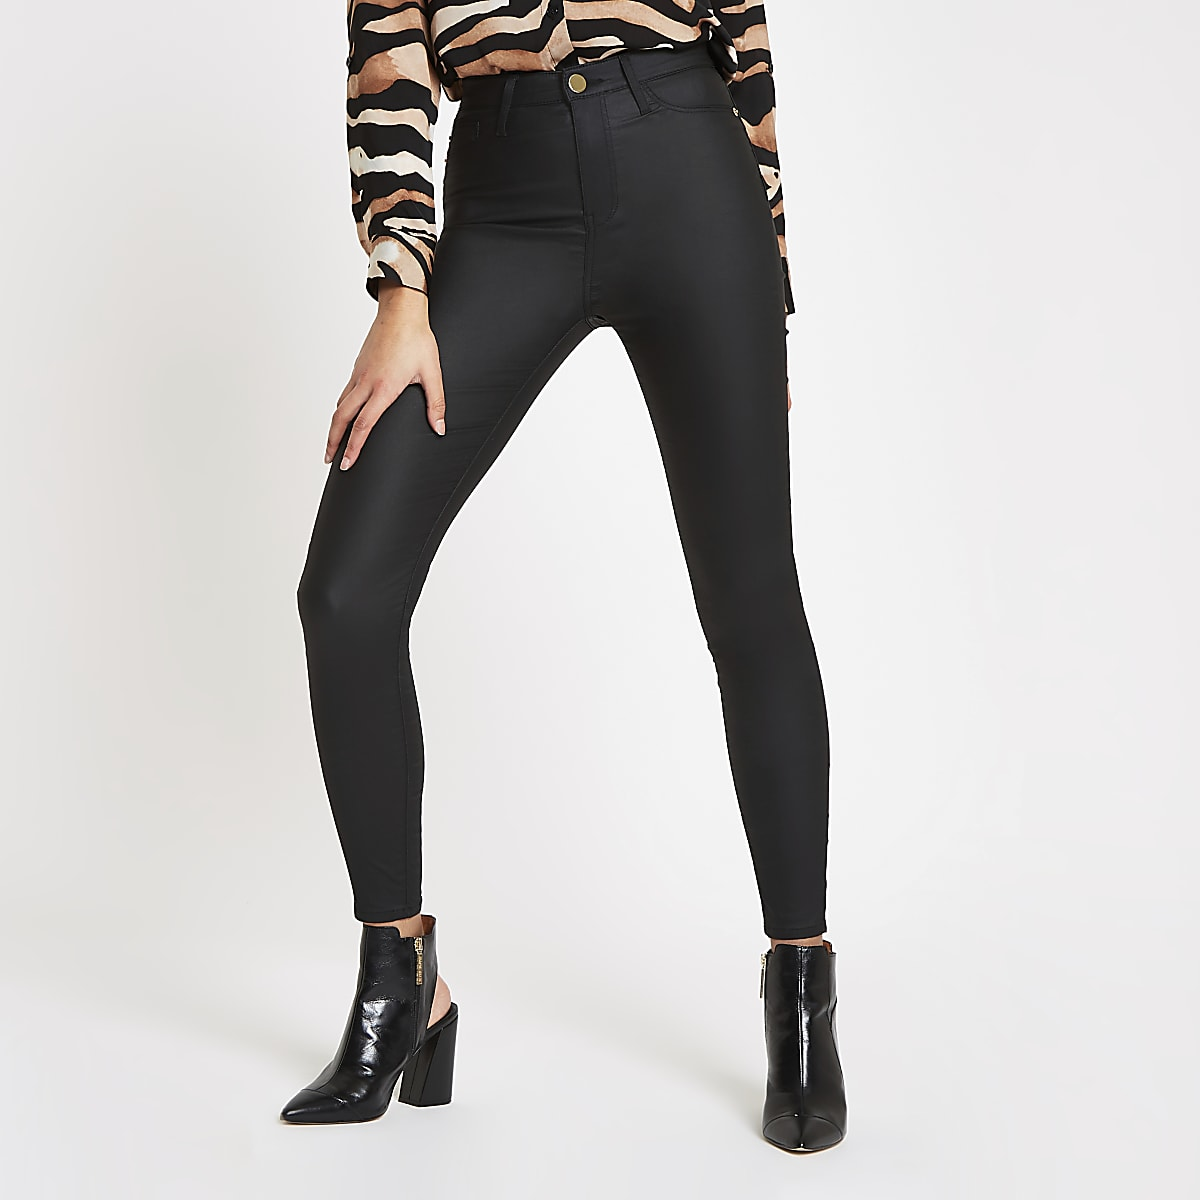 top quality wide range limited guantity Black Harper coated high rise skinny jeans